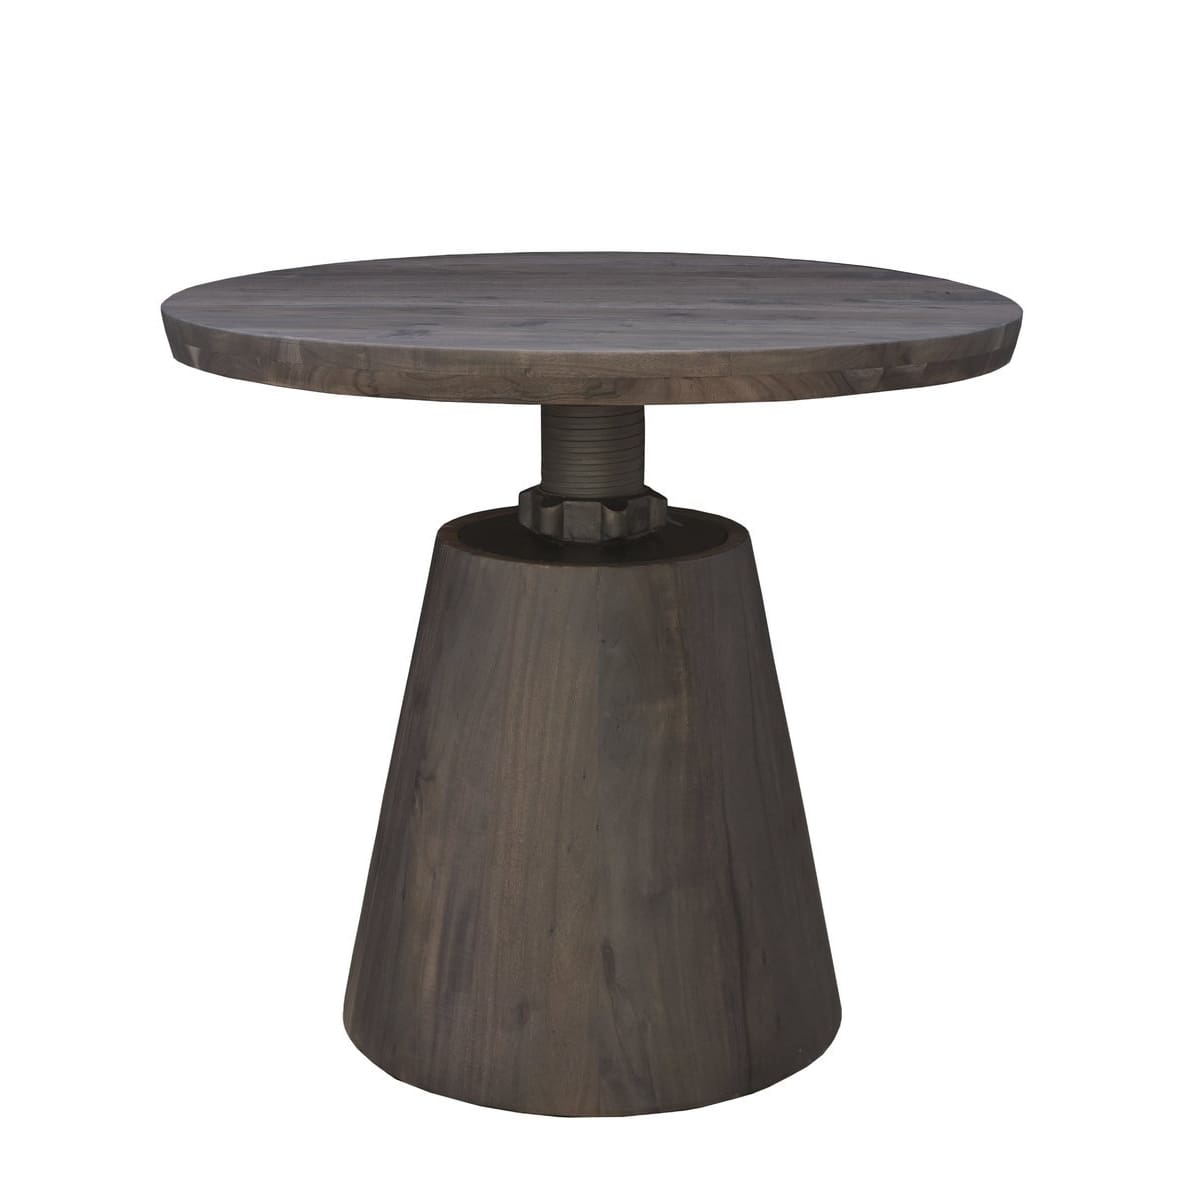 Averill Bistro Crank Table - Vinegar Matte BASE ONLY - accent tables